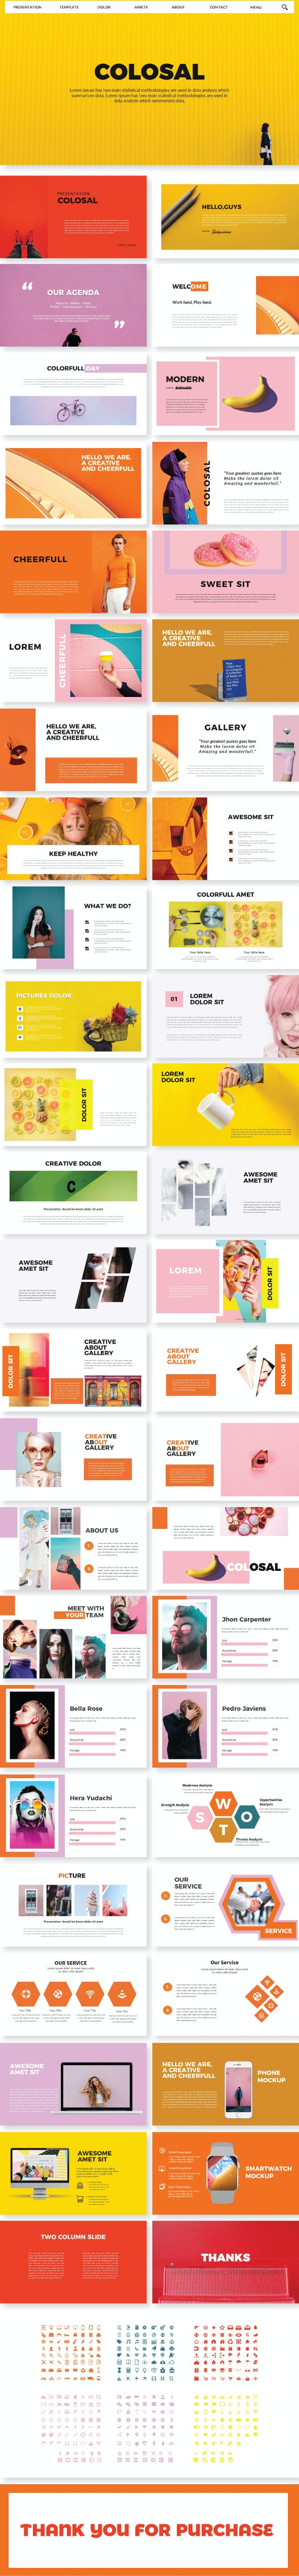 Colosal Google Slide Template - Google Slides Presentation Templates